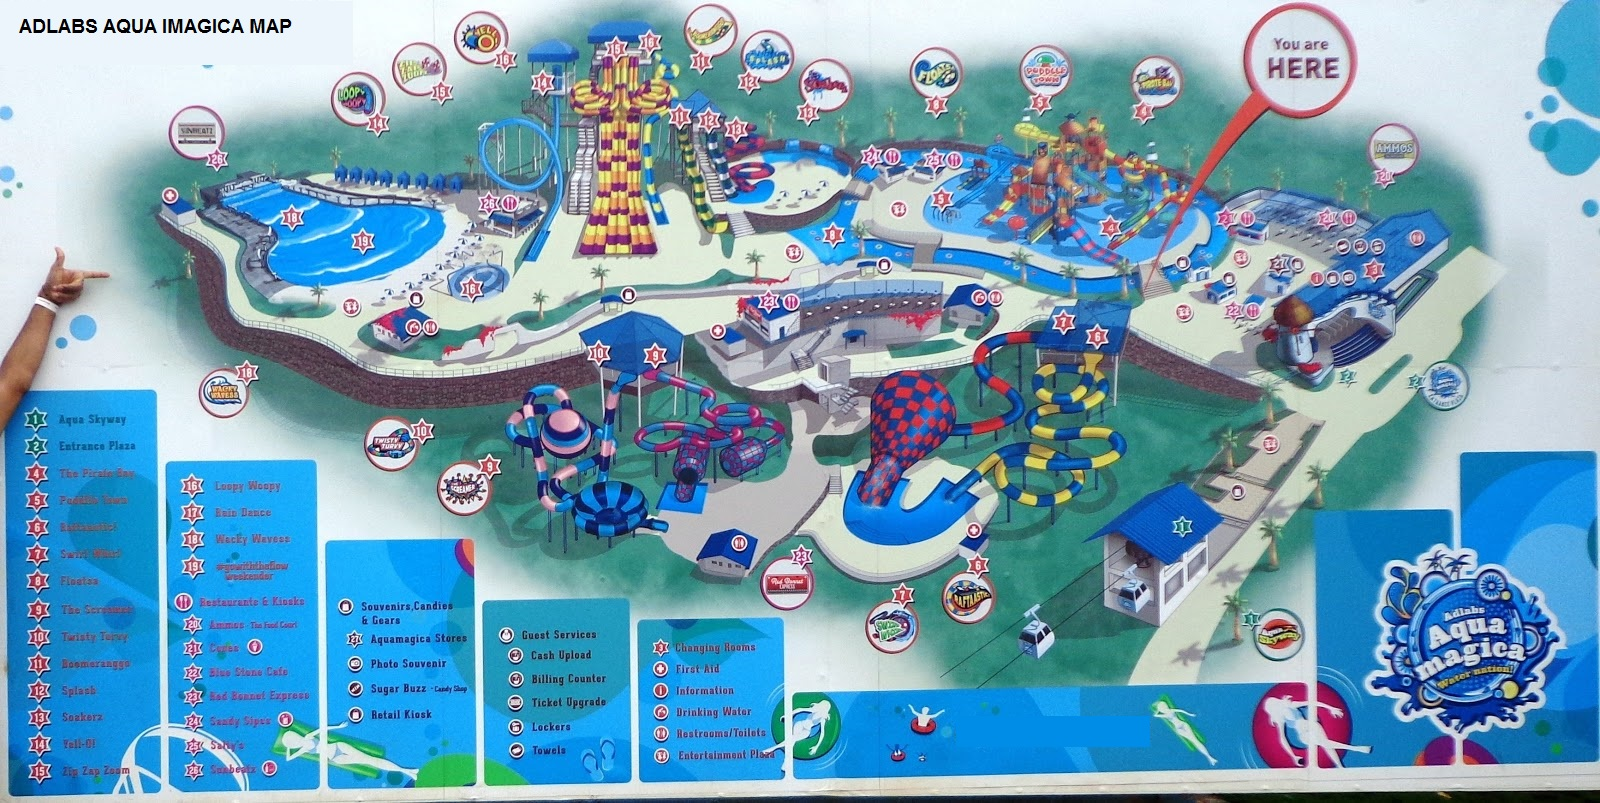 Adlabs Aqua Imagica Map